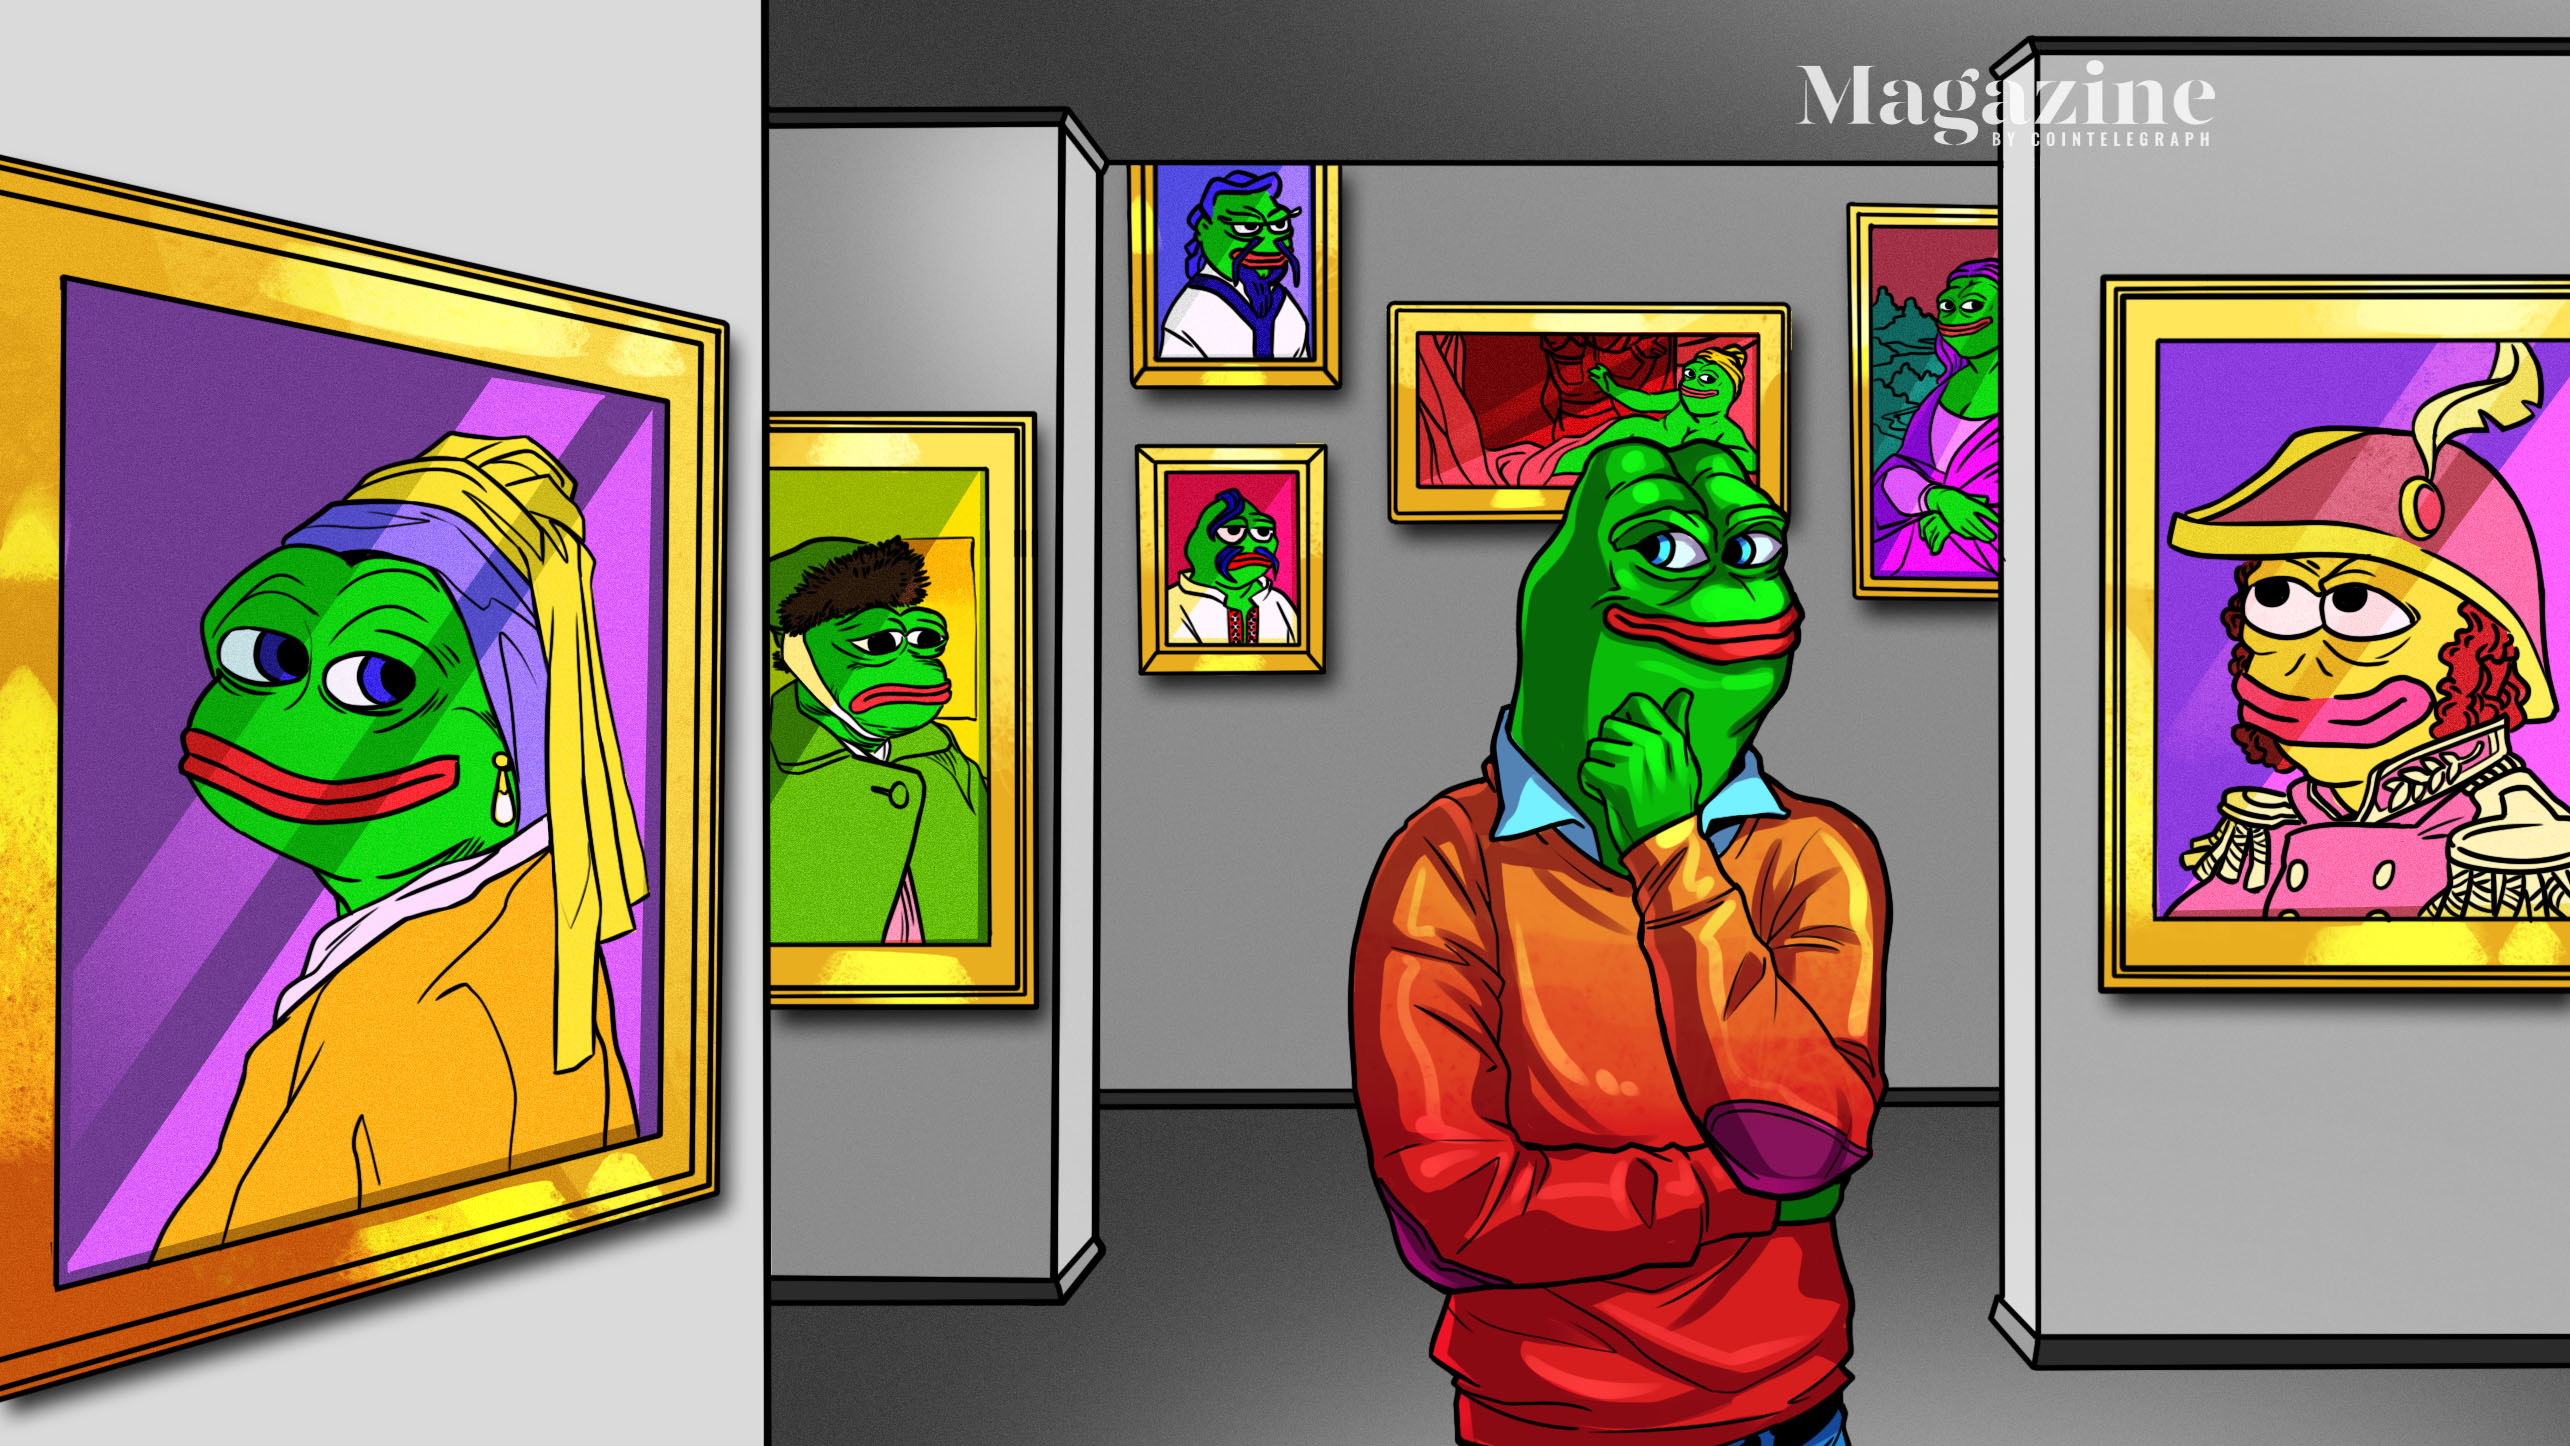 Crypto Pepes: What does the frog meme?